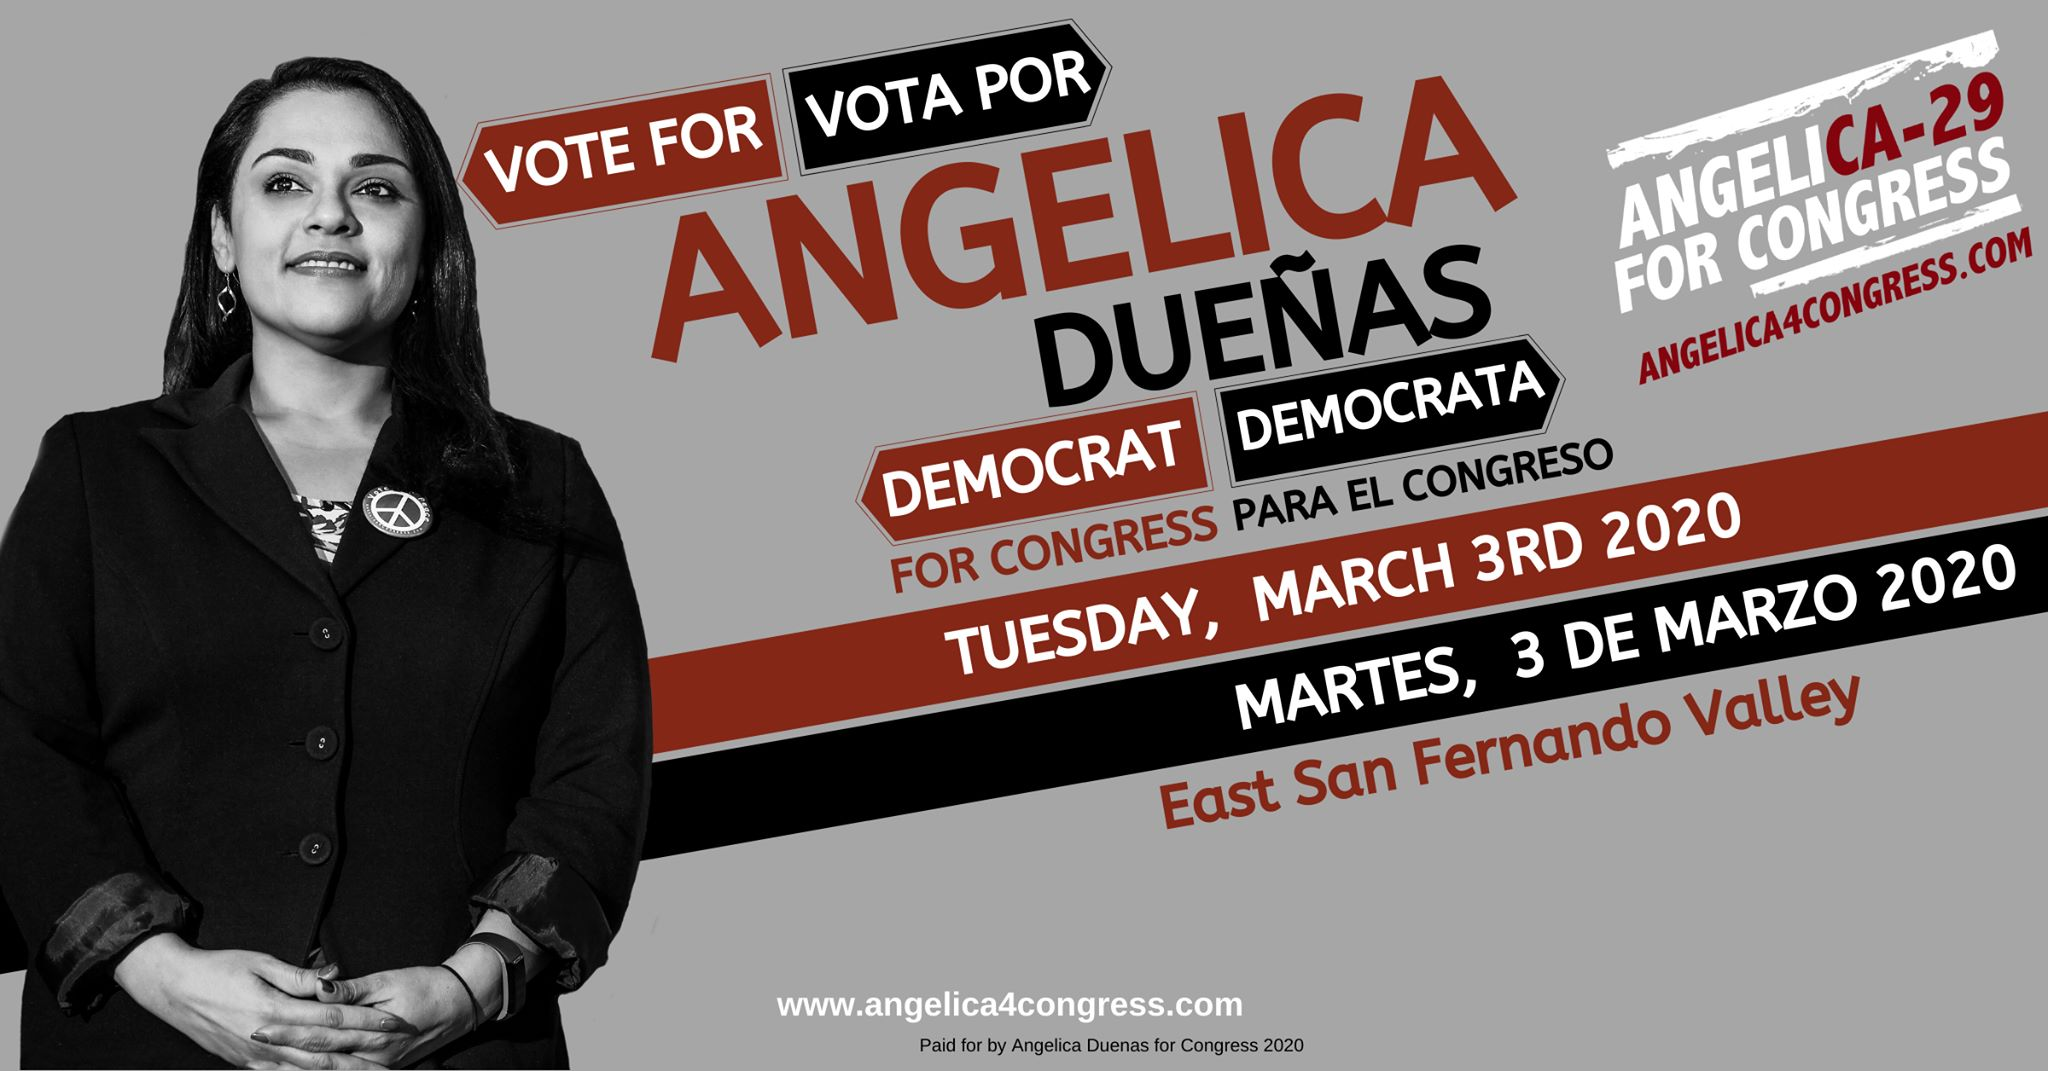 Vote For Angelica Dueñas